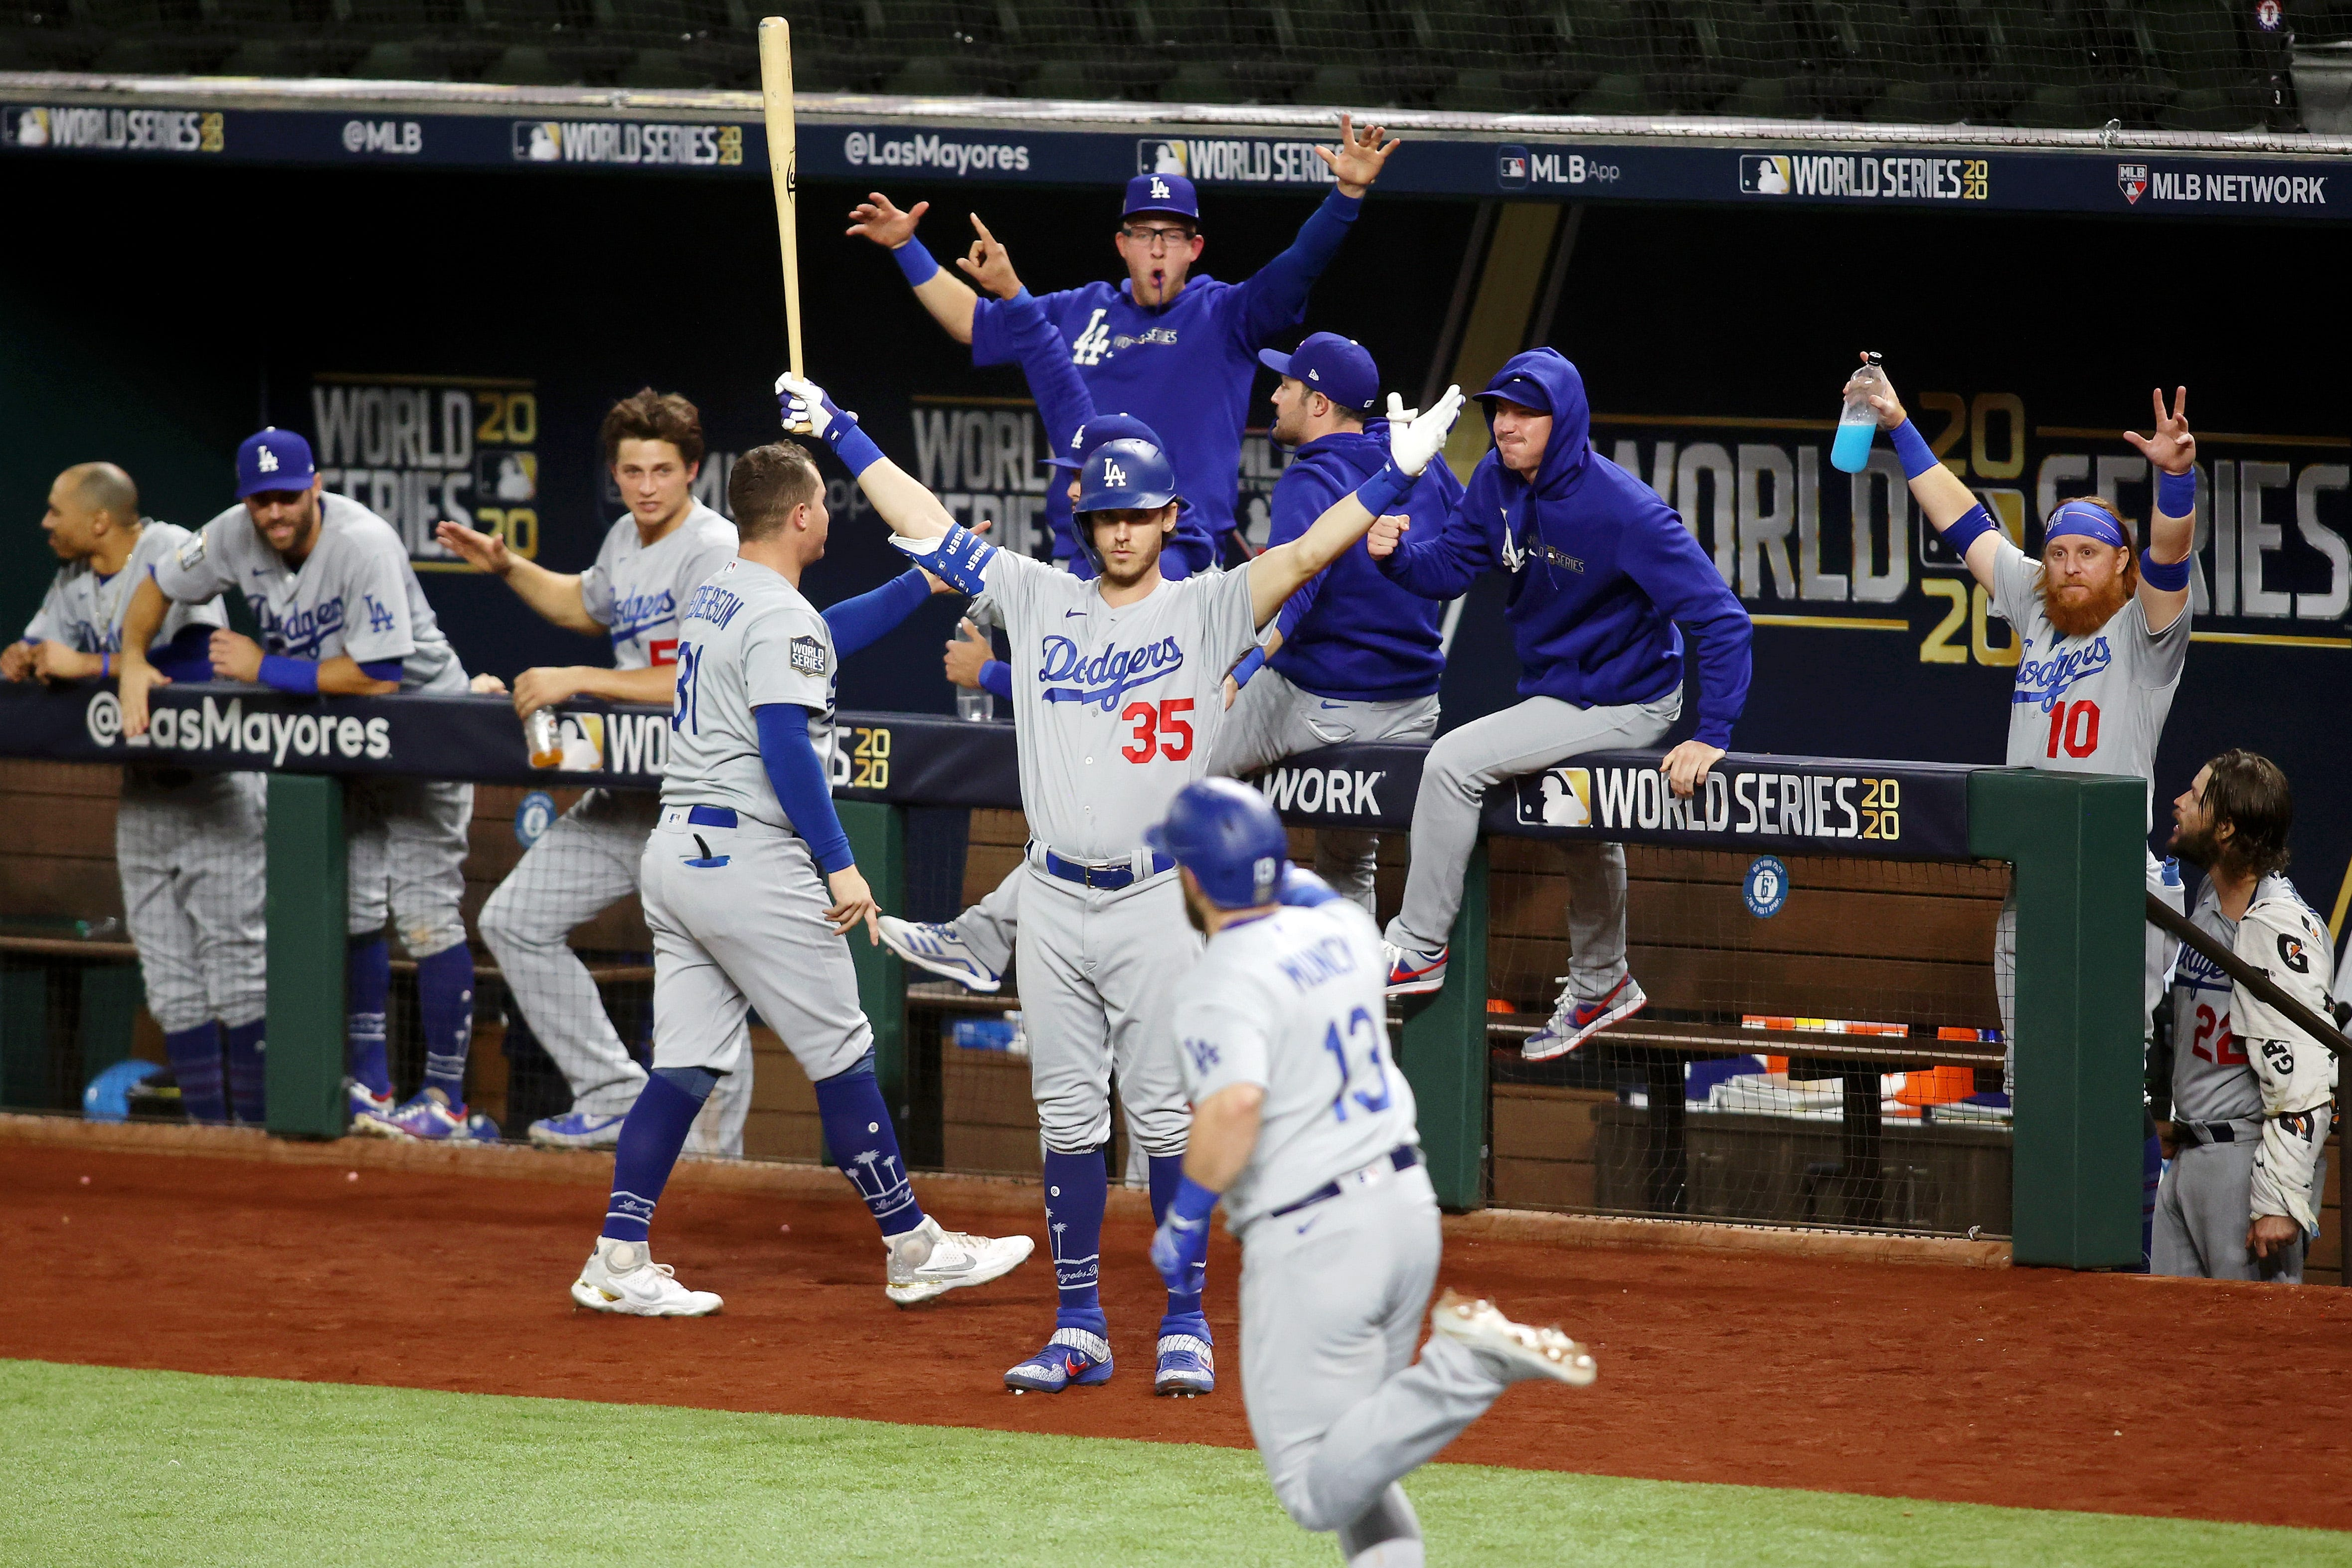 Dodgers win Game 5 to get within one victory of first World Series title since 1988